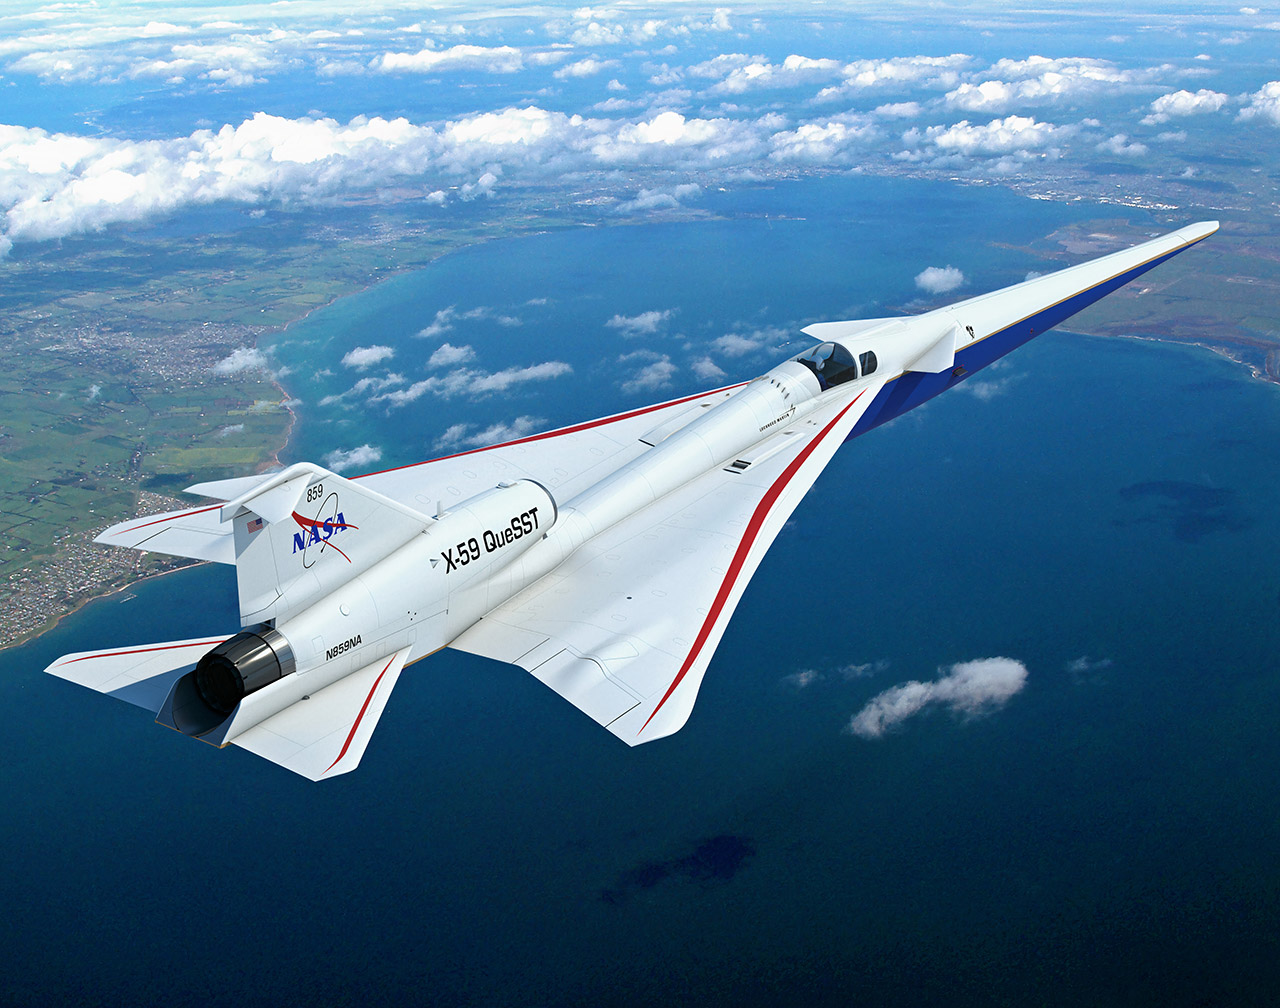 NASA X-59 Quiet SuperSonic Technology Research Aircraft